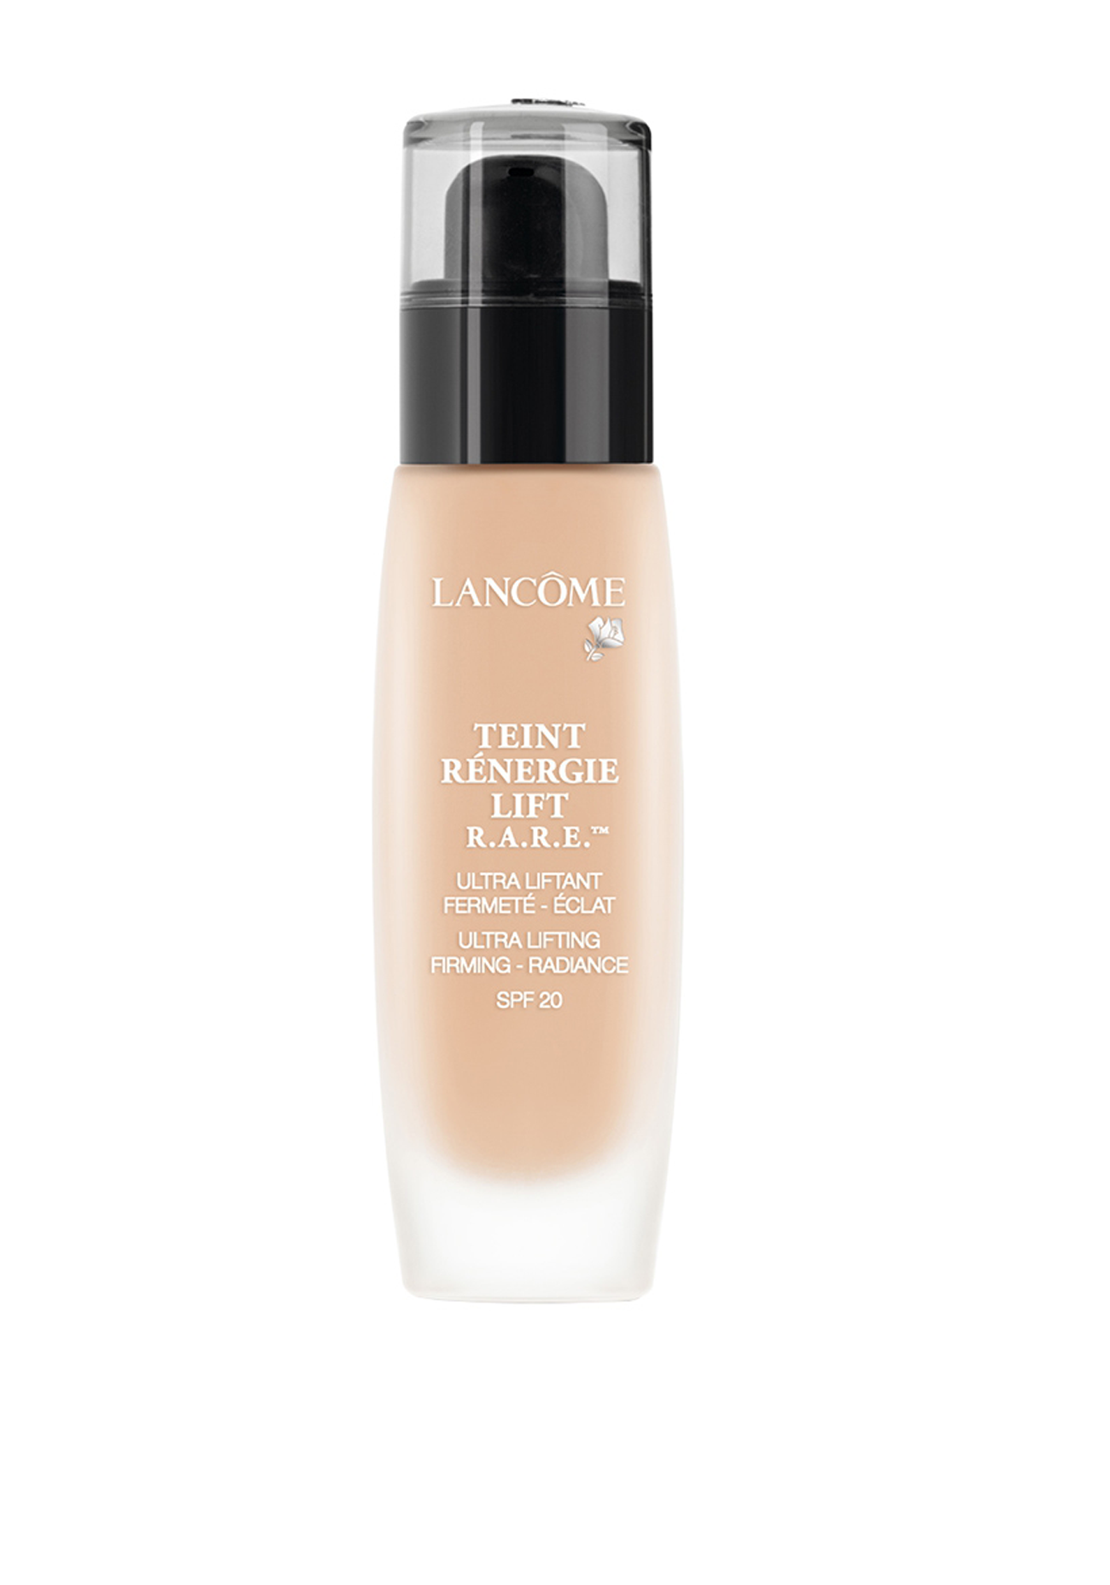 Lancome Teint Renergie Lift R.A.R.E Liquid Foundation with SPF20, 01 Beige